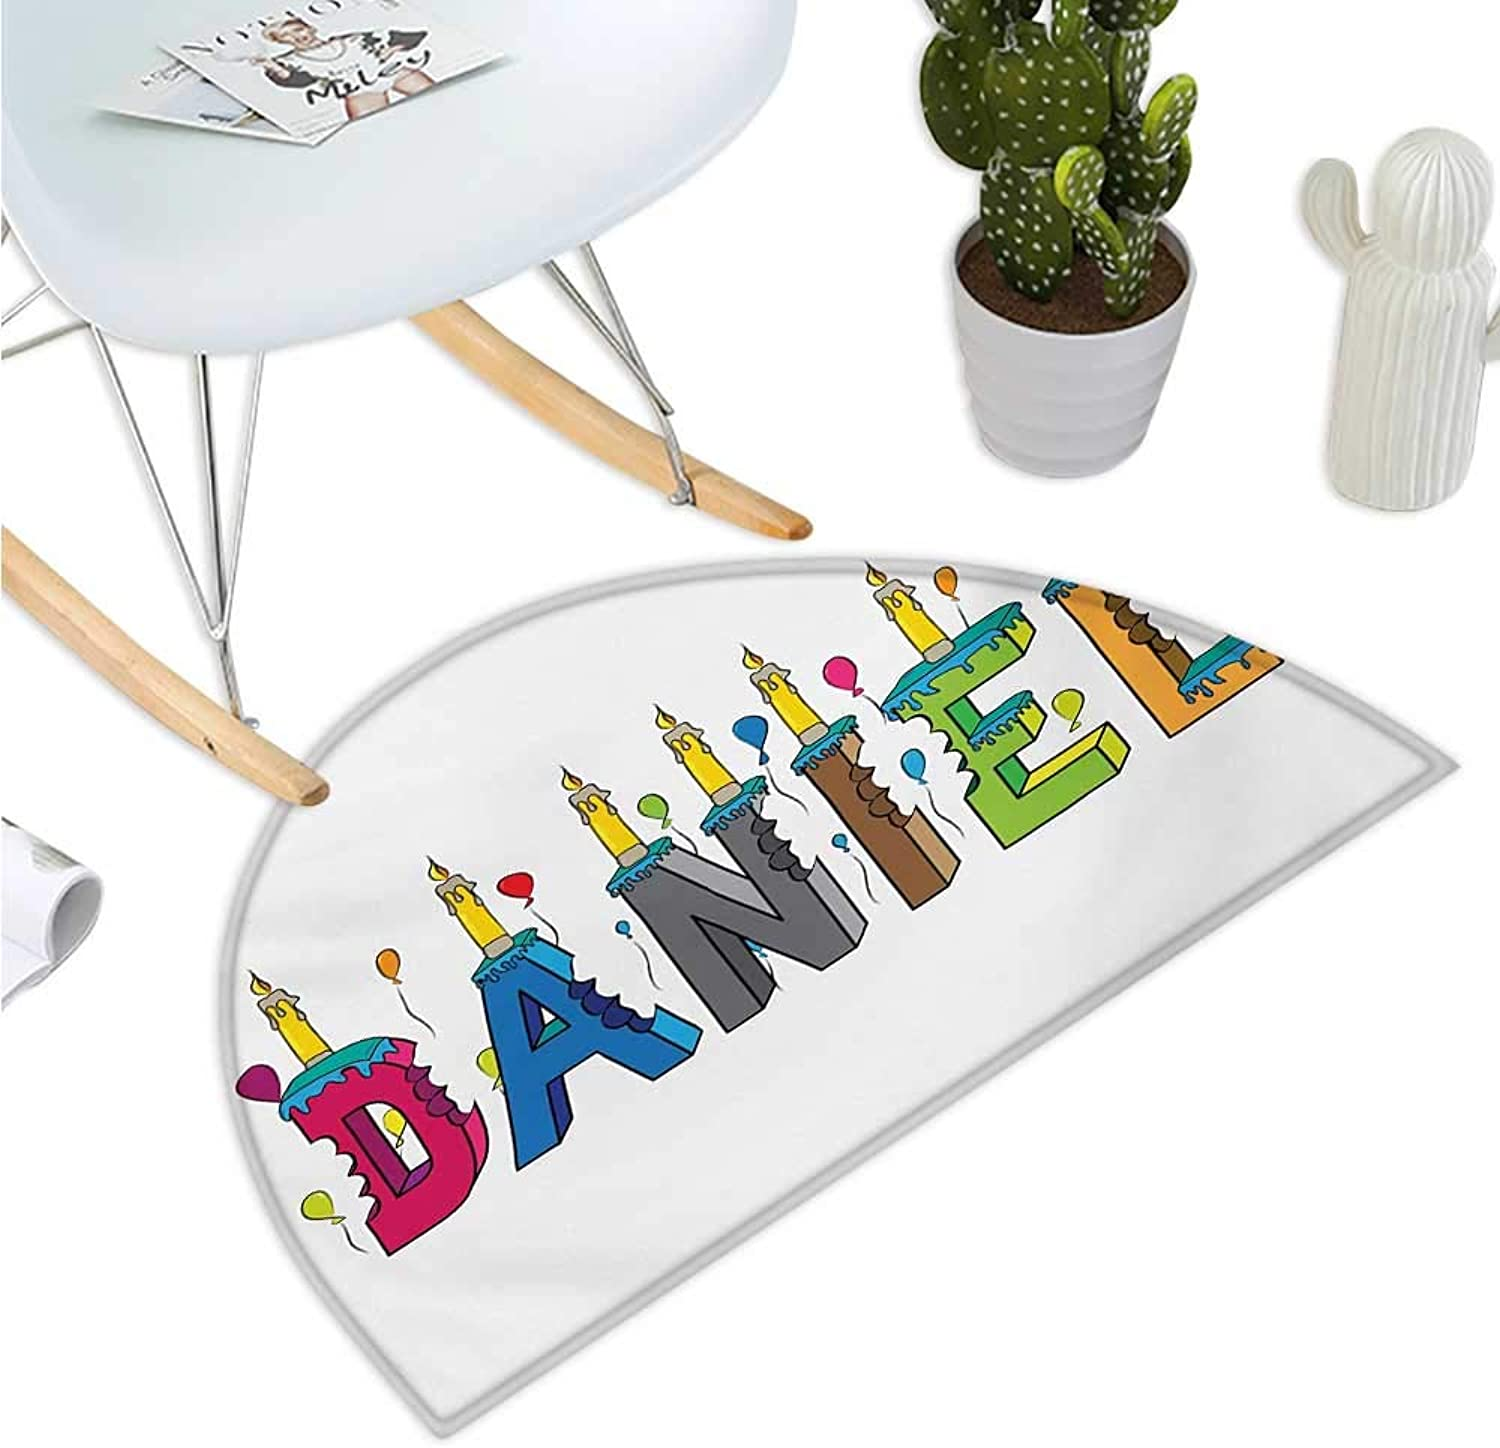 Daniel Semicircular Cushion Grooving Cheerful Male Name with Happy Occasion Birthday Theme Bite Marked Cake Bathroom Mat H 35.4  xD 53.1  Multicolor